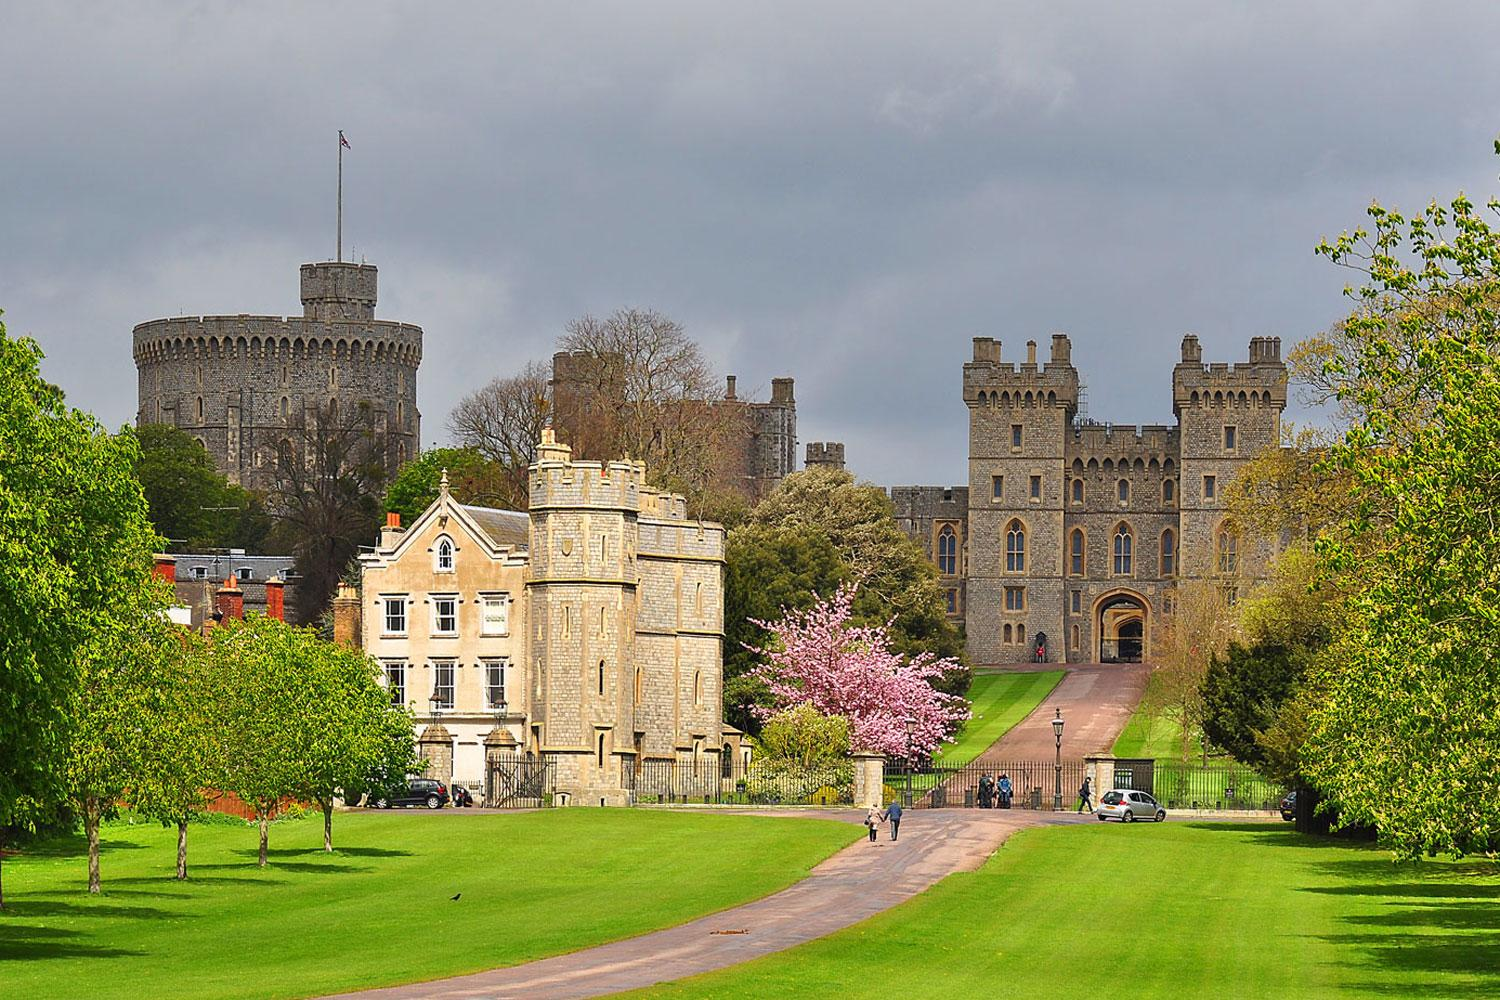 Windsor Castle in all its glory